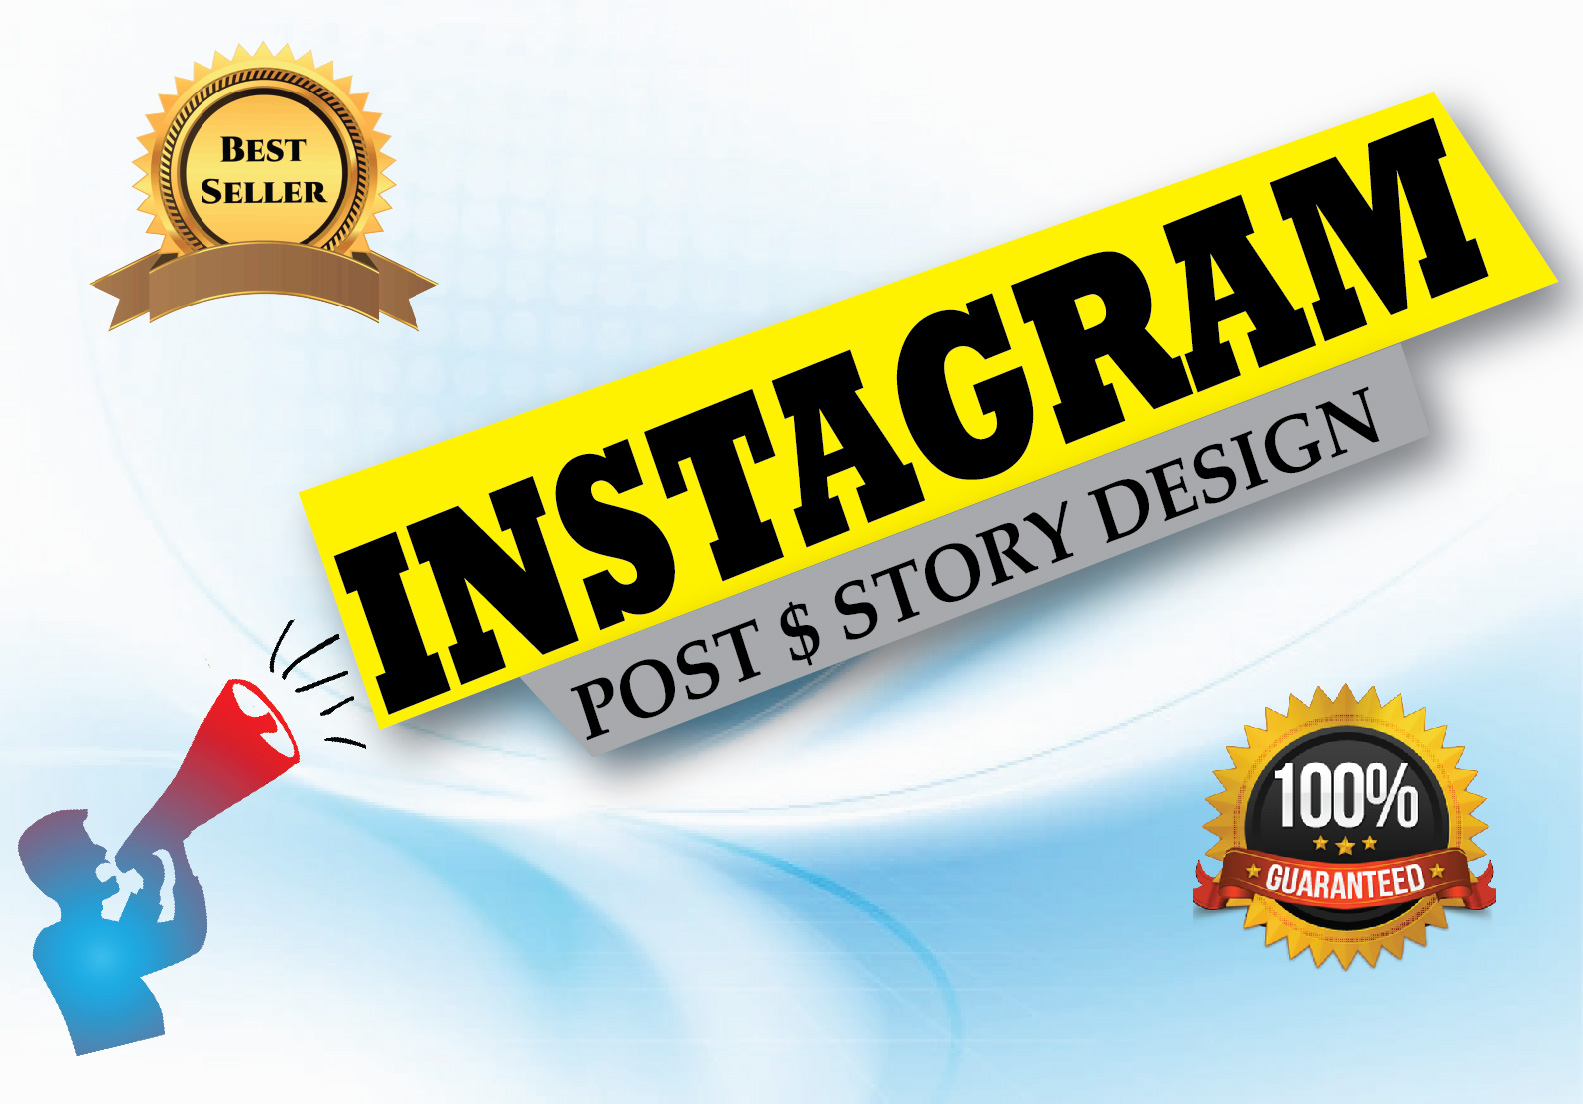 I Will Design Instagram Post & Story For Your Brand